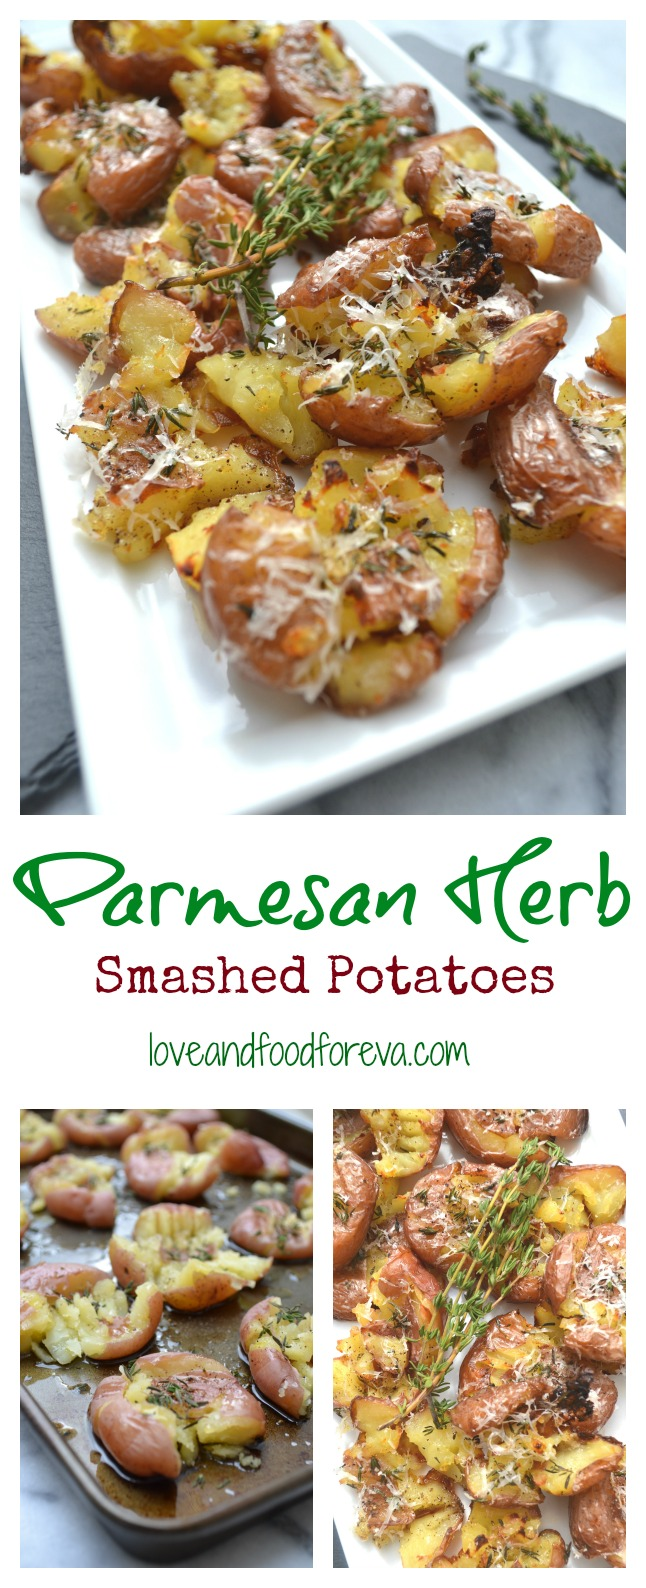 Parmesan Herb Smashed Potatoes - sure to be a crowd favorite!